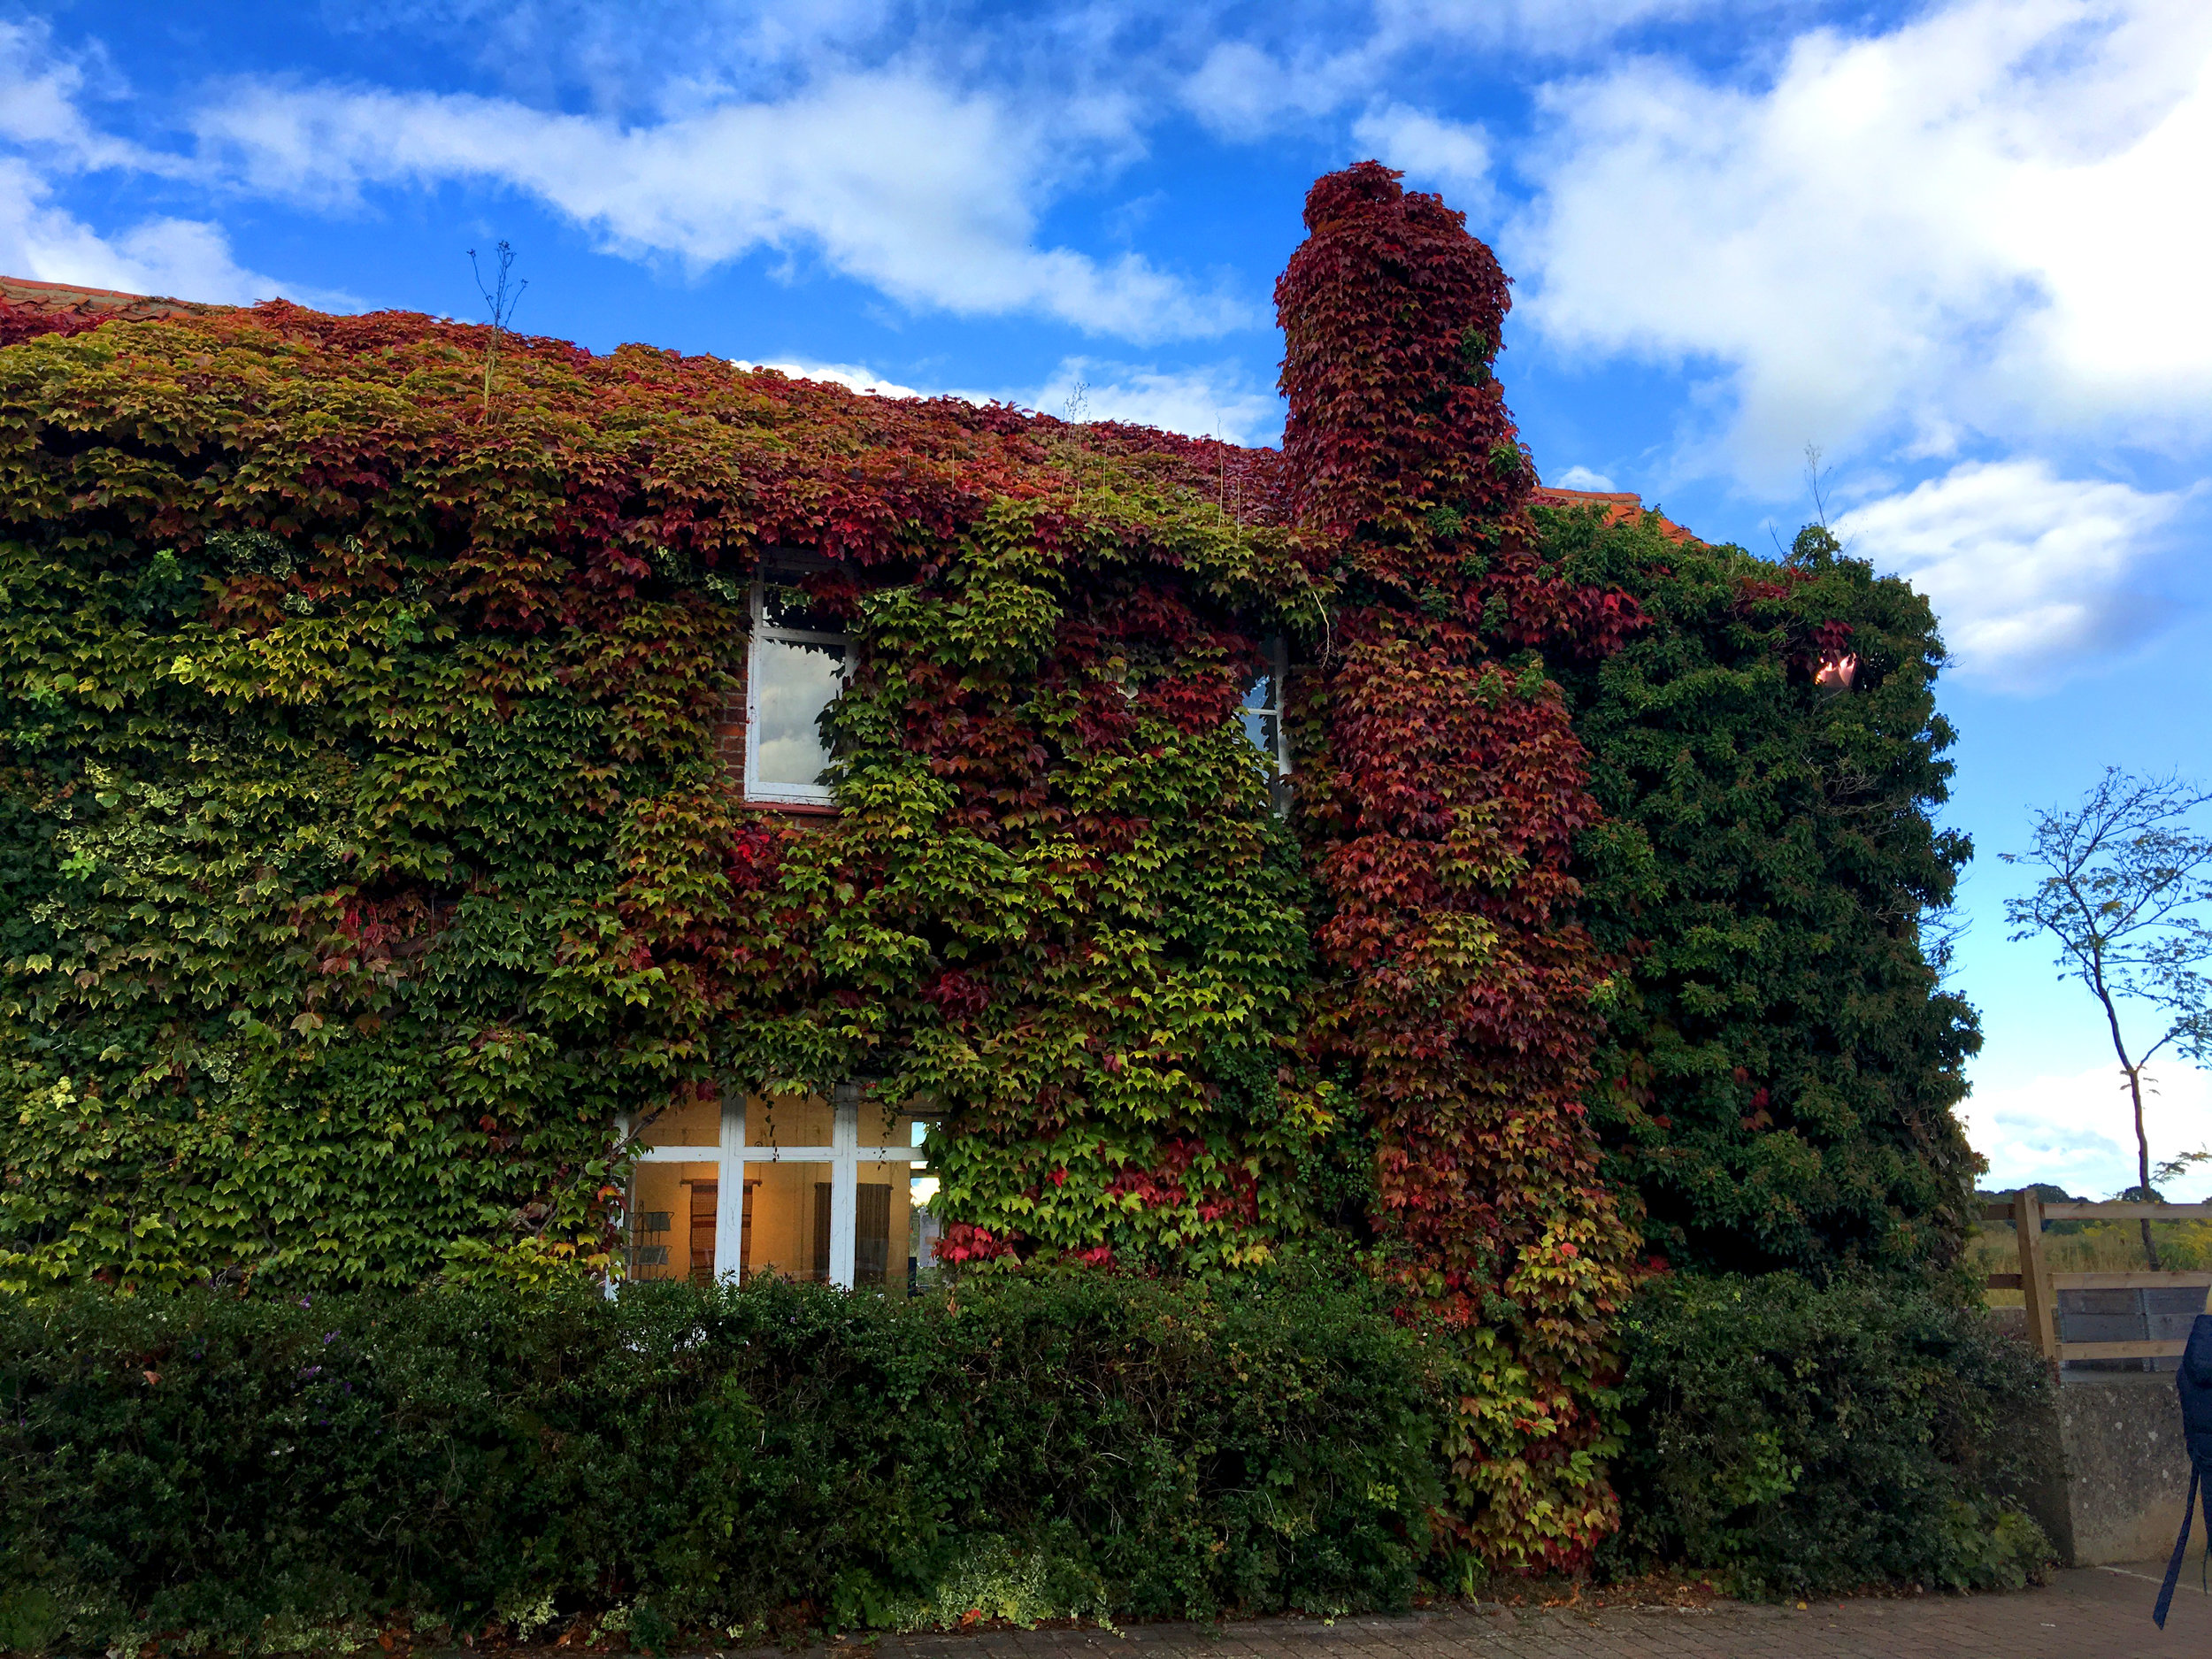 The beautiful ivy-covered buildings at Snape Maltings.